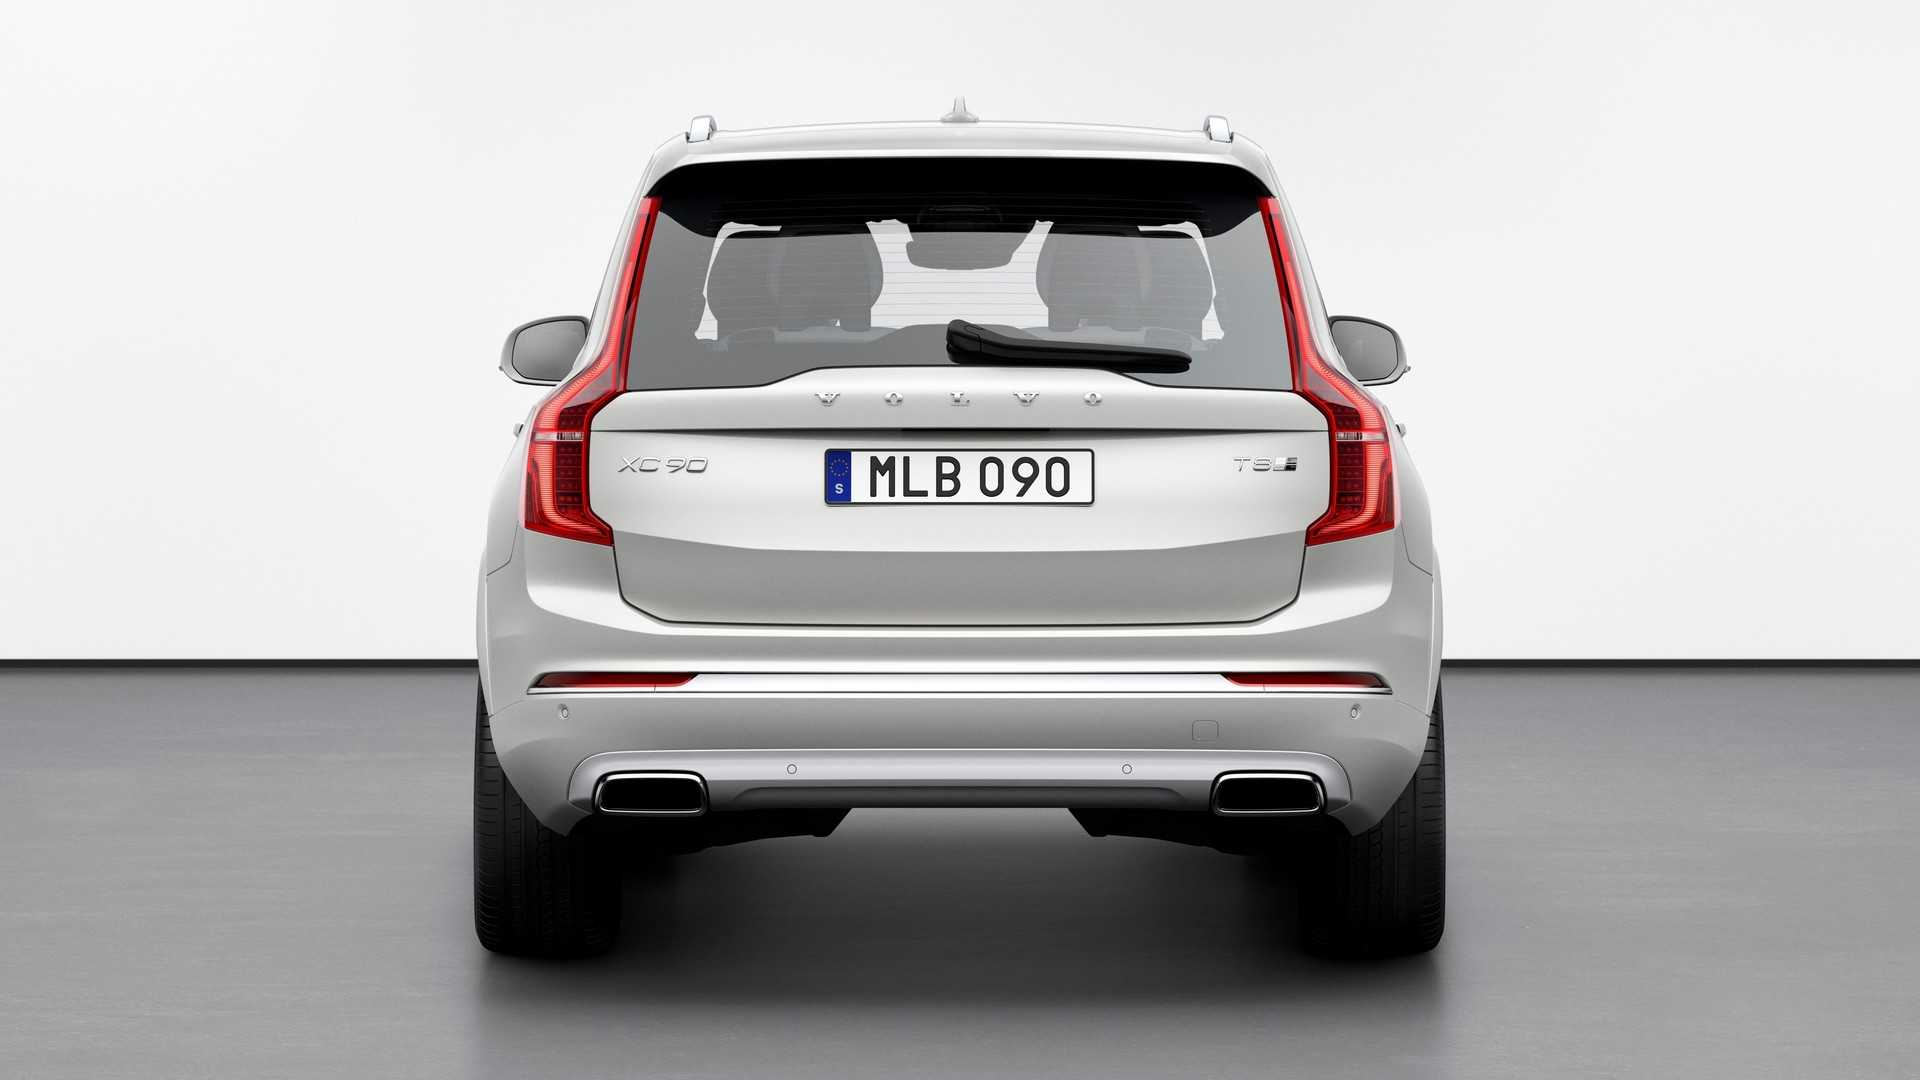 59 New Volvo Xc90 Model Year 2020 Images with Volvo Xc90 Model Year 2020